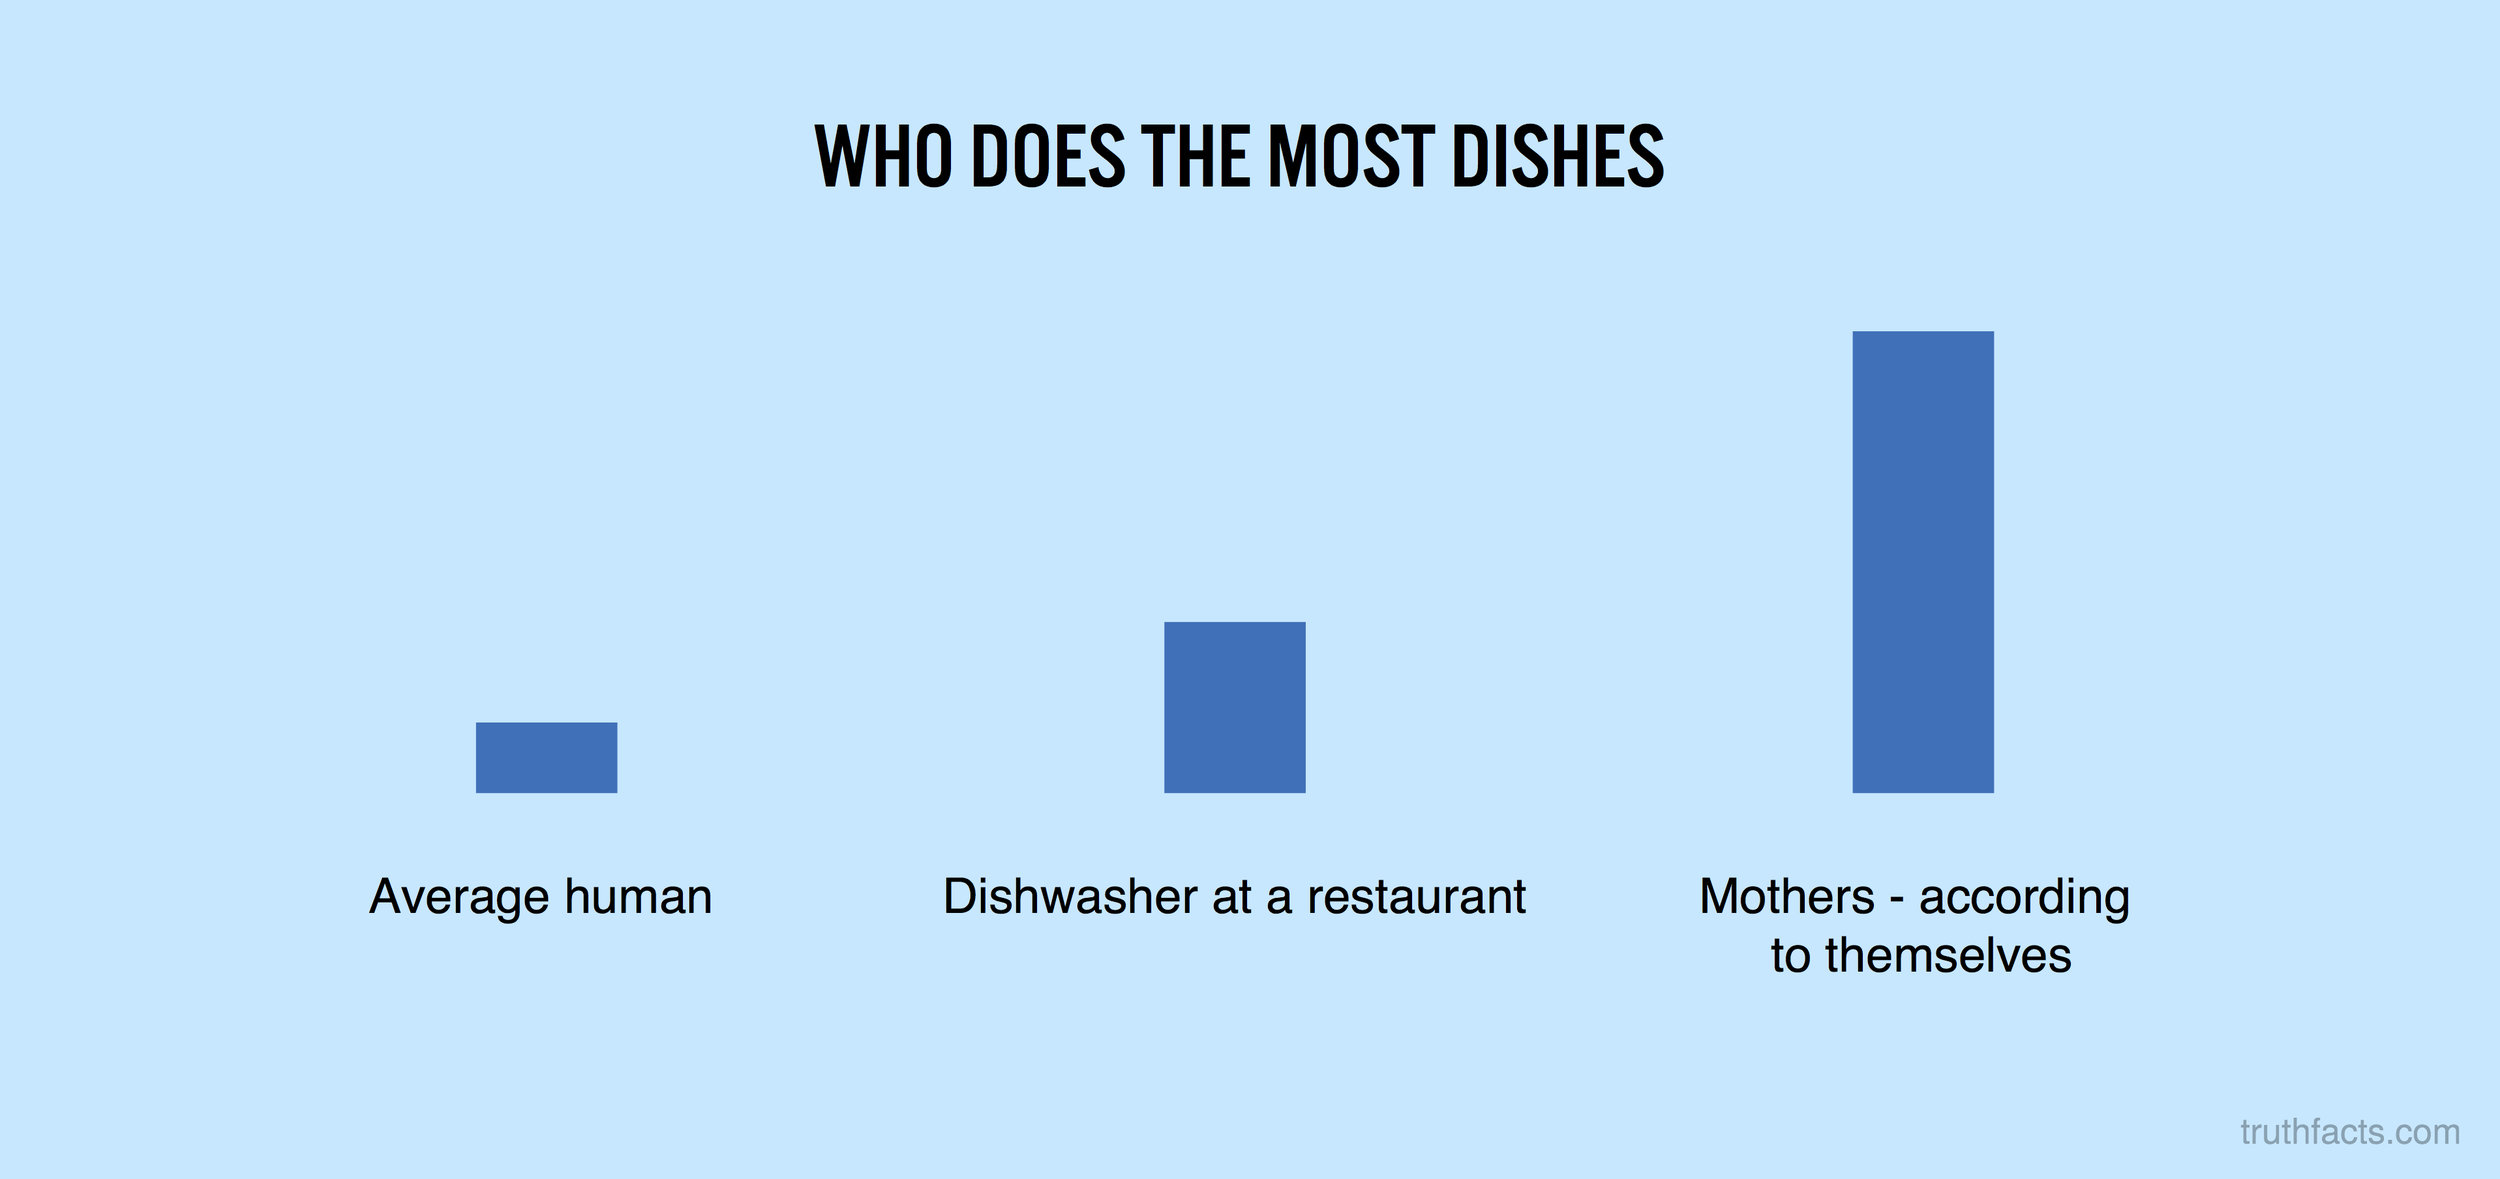 Who does the most dishes